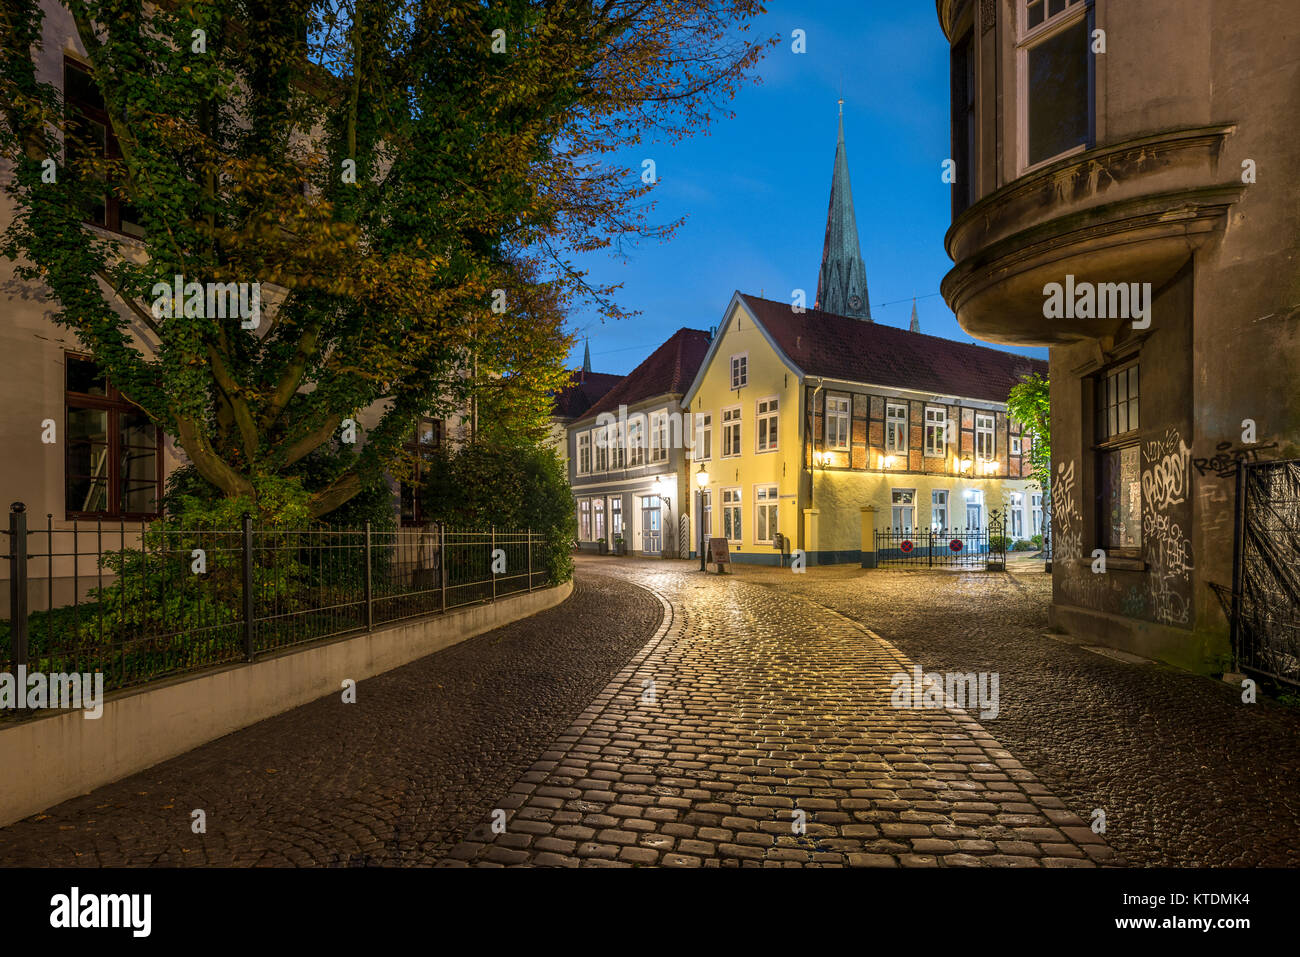 lower saxony oldenburg stock photos lower saxony oldenburg stock images alamy. Black Bedroom Furniture Sets. Home Design Ideas